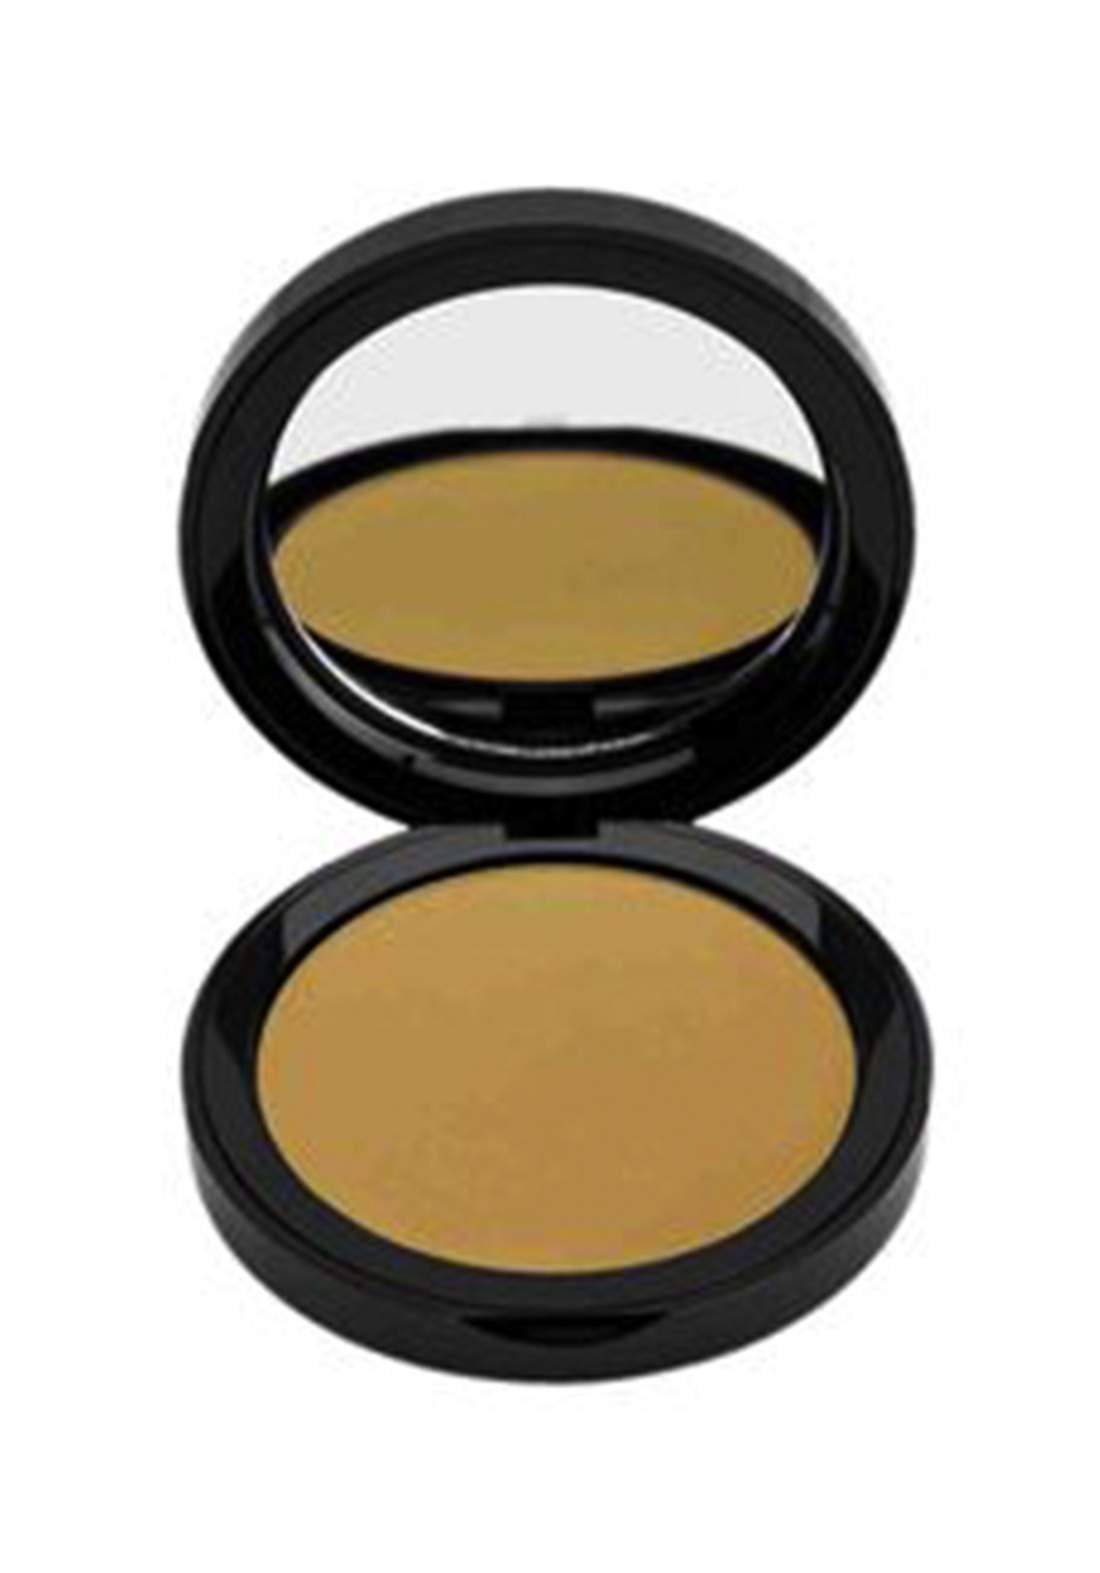 Wow By Wojooh 8D21 Flawless Matte Compact Foundation No.8D21 So Rimal 5.9g كريم اساس مضغوط